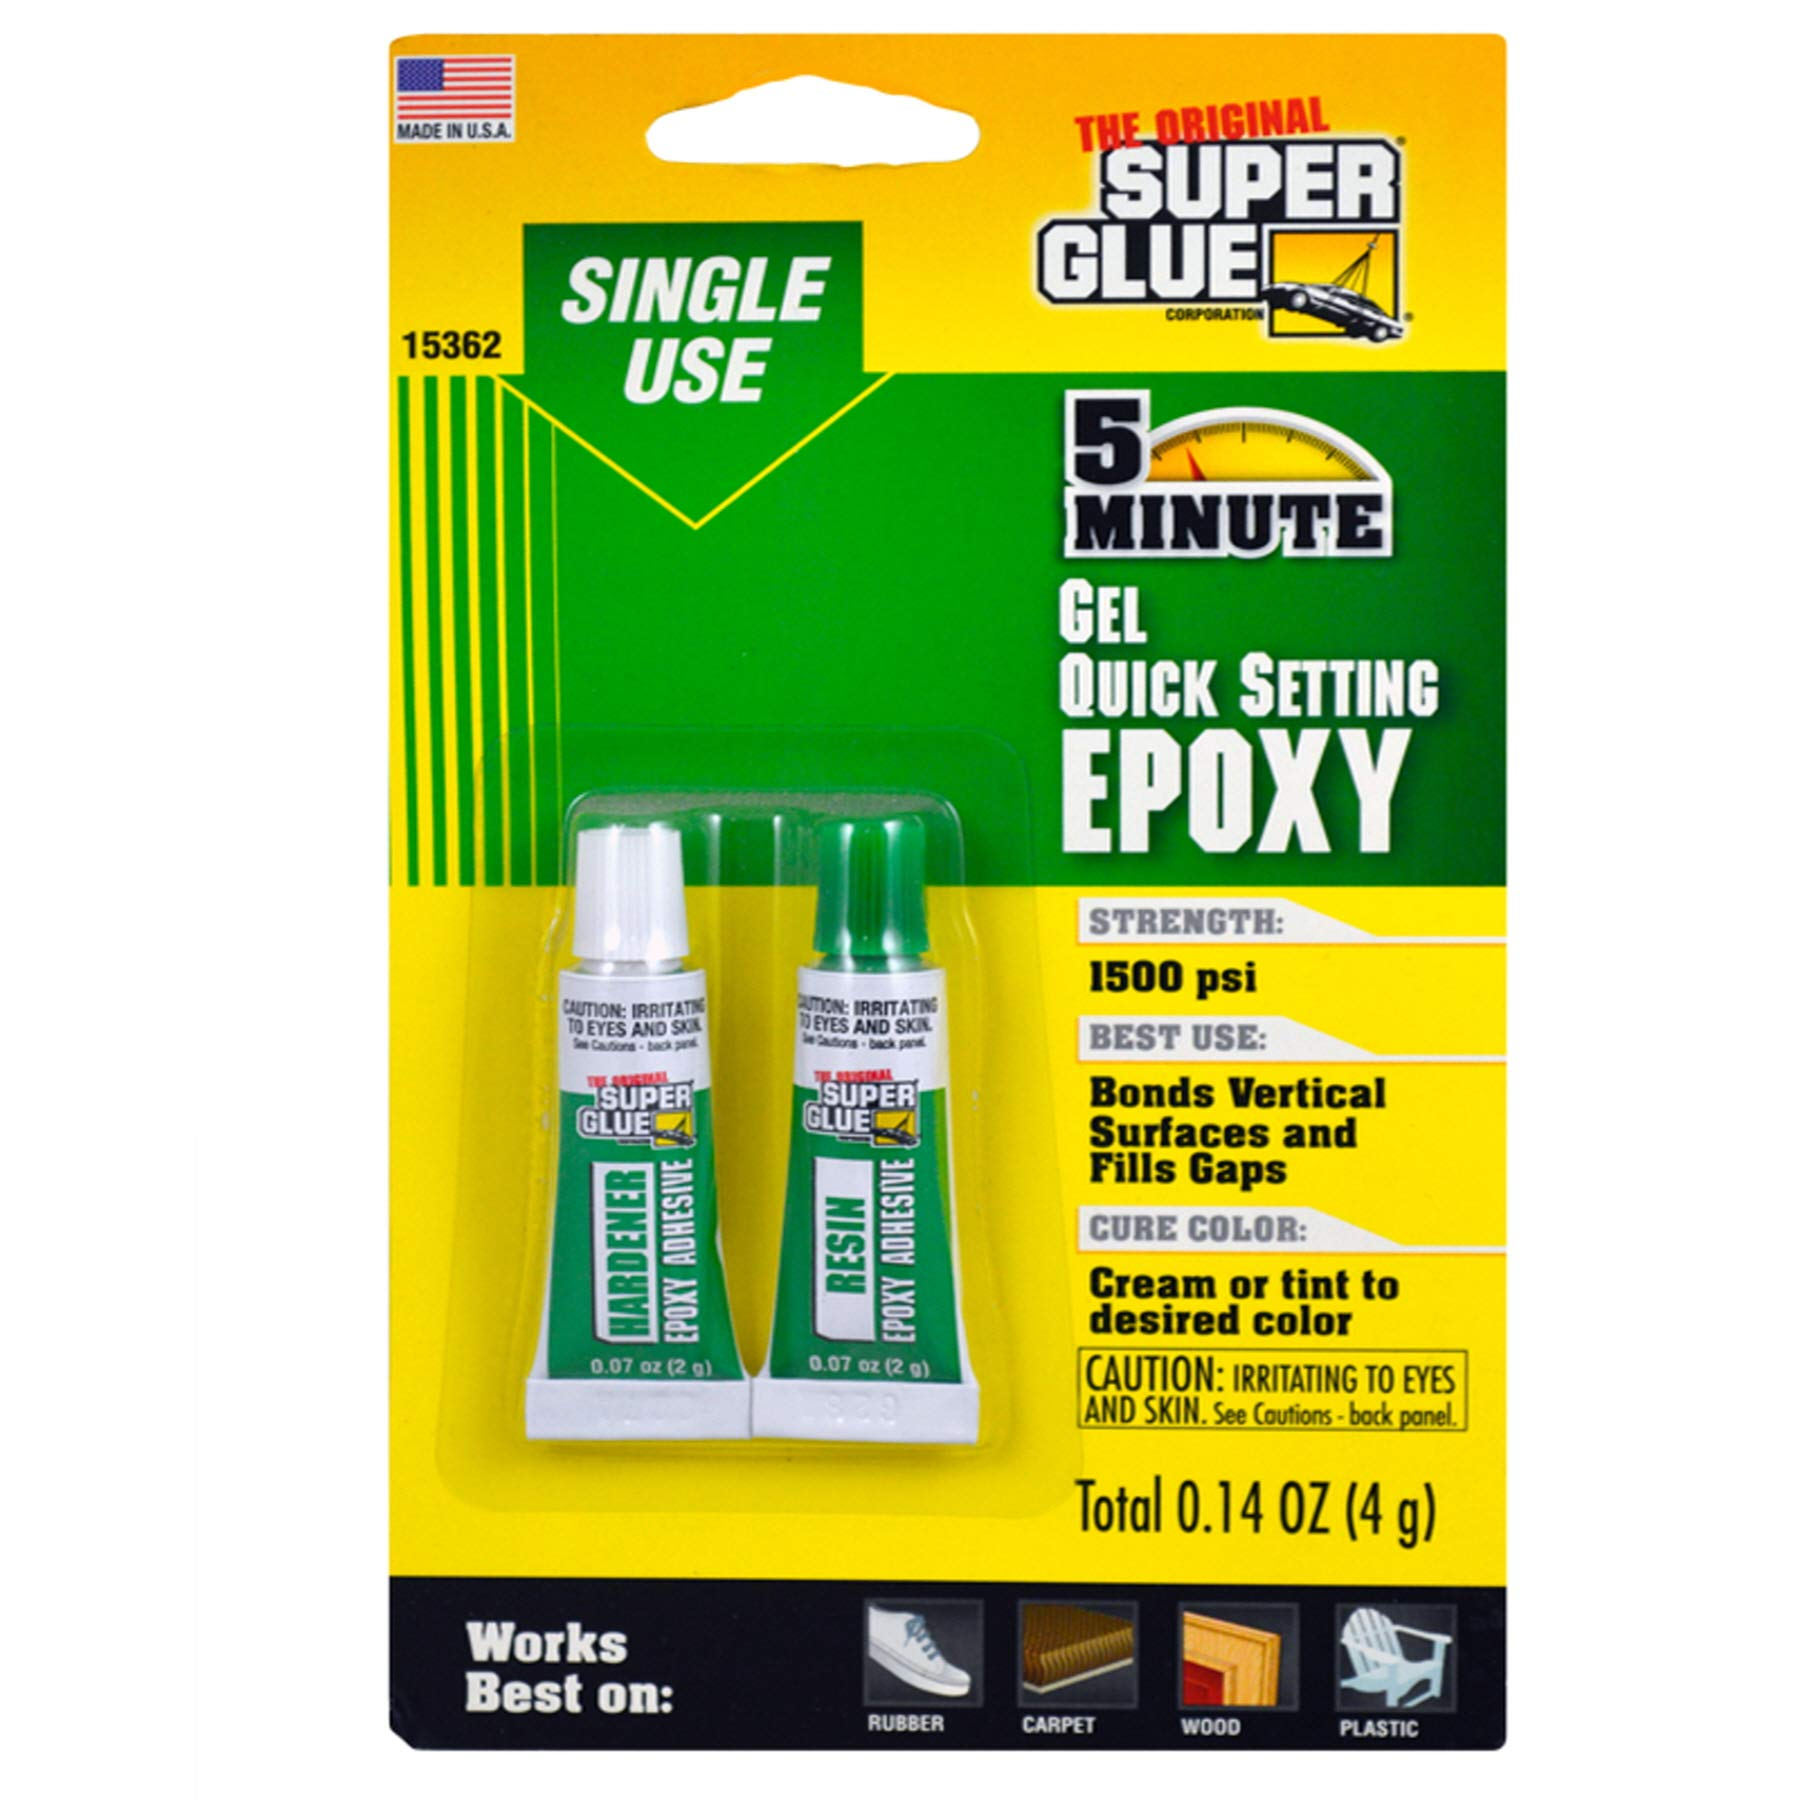 (Pack of 24, 48 Ct) The Original Super Glue Super Glue Quick Setting Epoxy Gel, 2pk by Unknwon (Image #1)